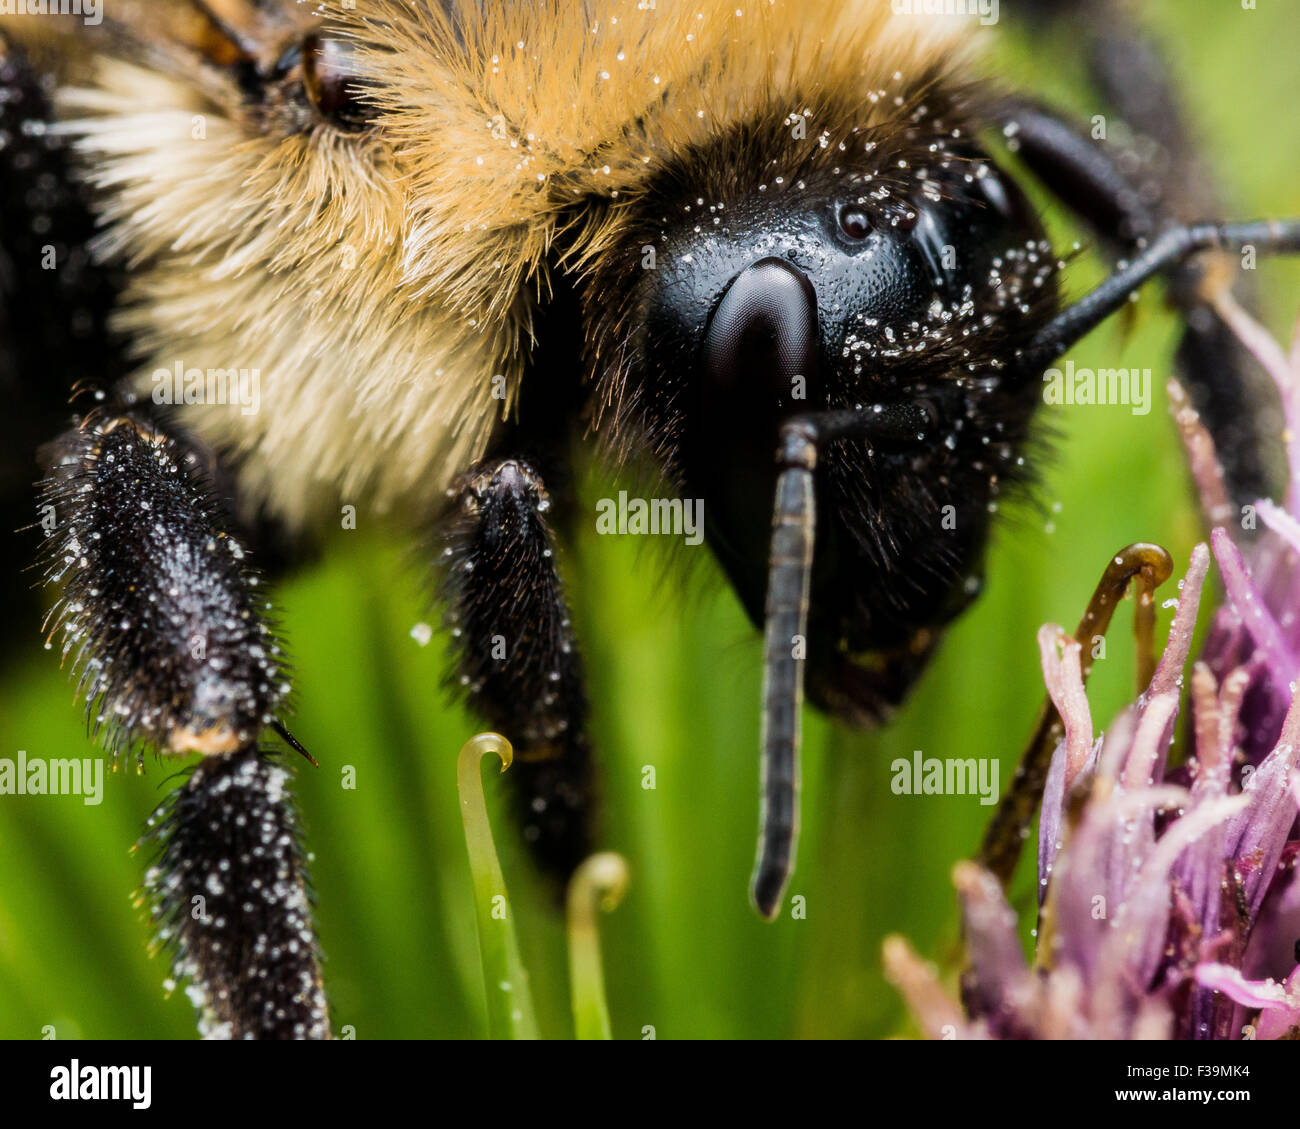 Bumble bee close up on green and purple flower - Stock Image